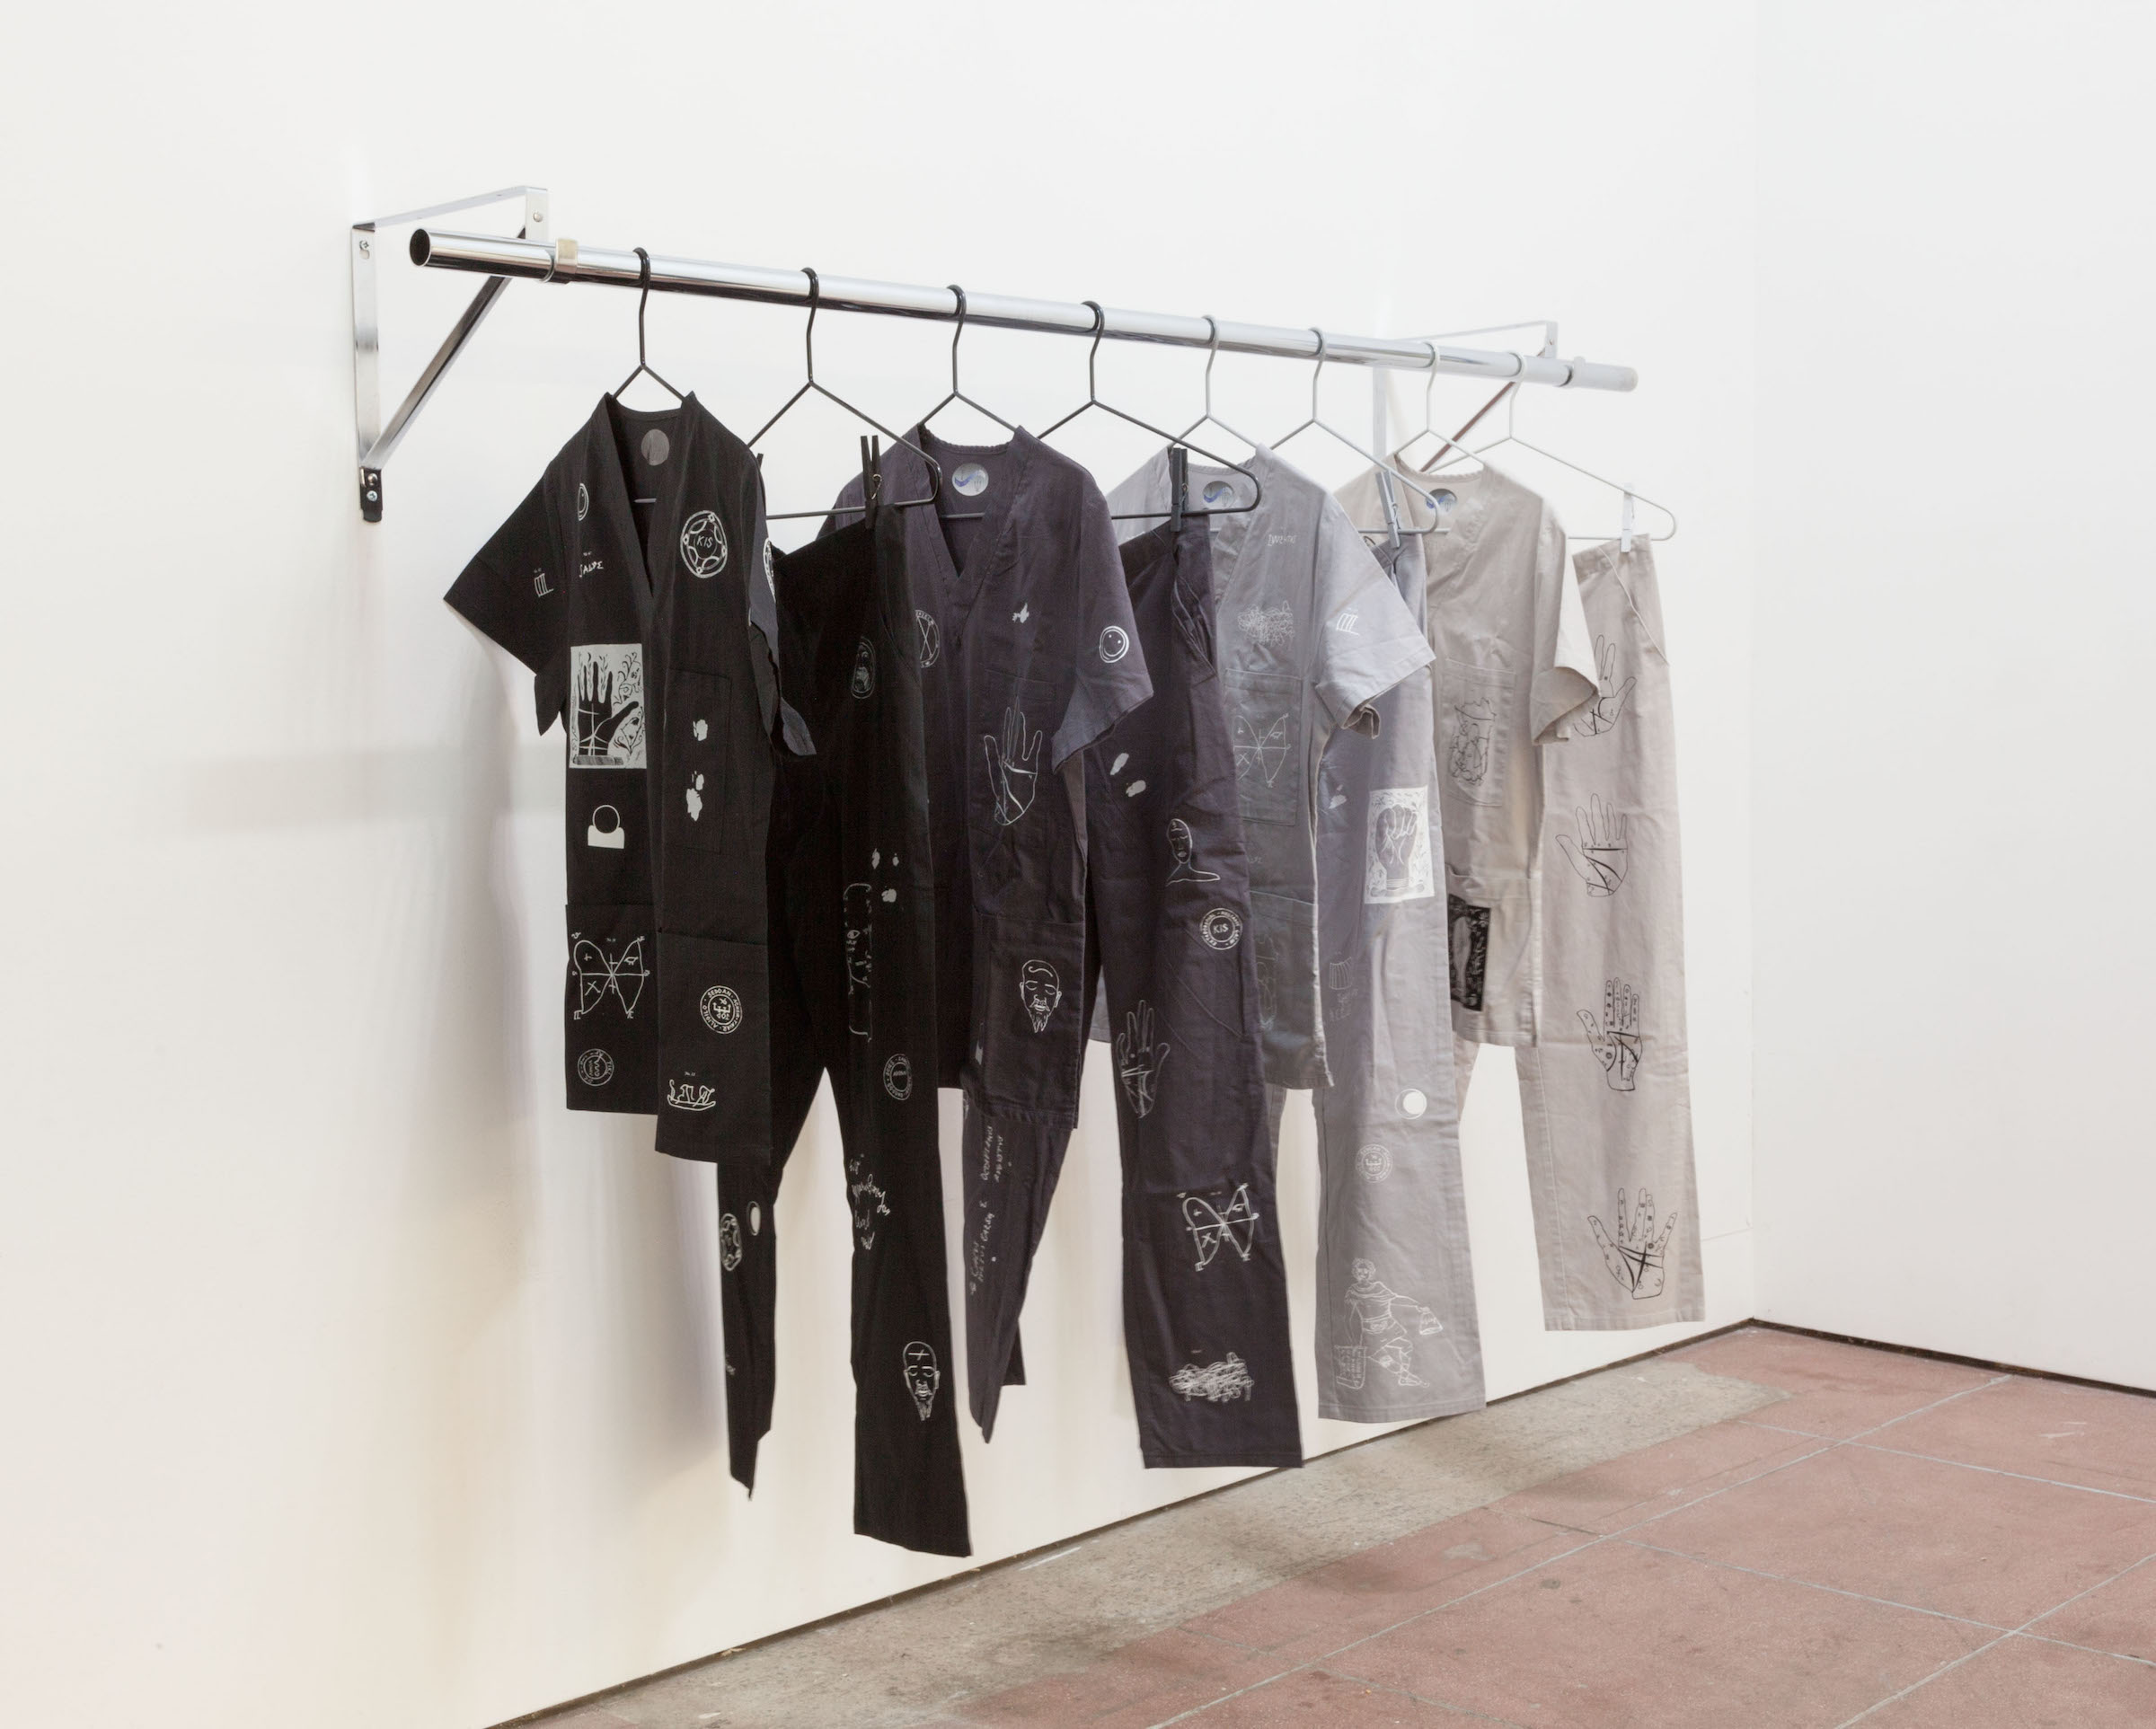 Natalie Labriola, Uniforms For Psychic Protection , 2015,powder coated steel hangers, painted clothes pins, custom made heat-pressed cotton garments, chrome garment rack, dimensions variable